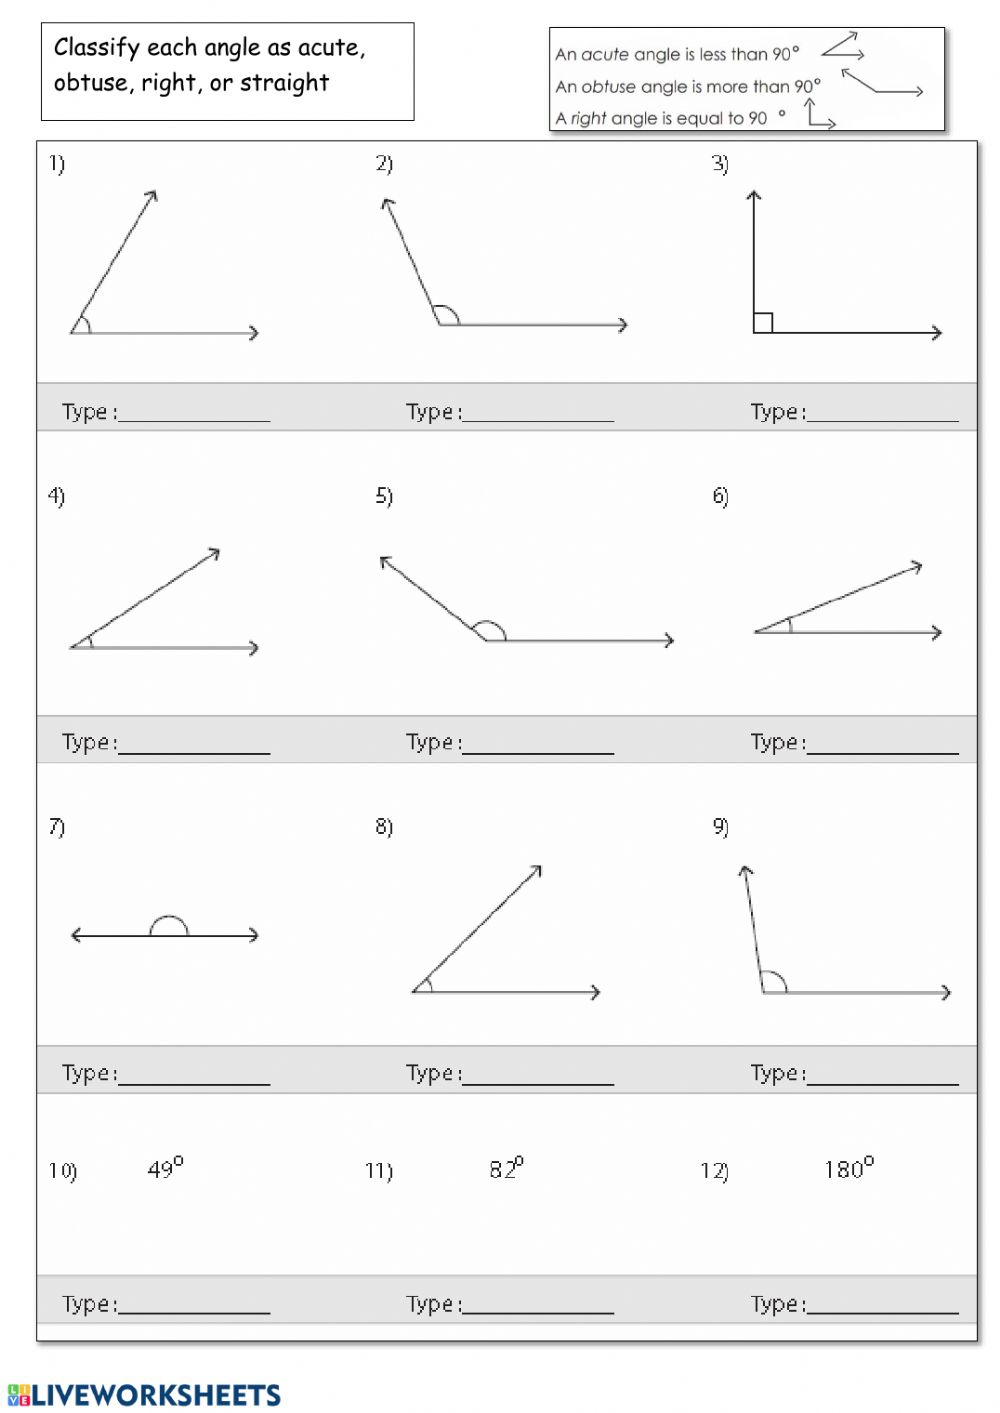 hight resolution of Classify Angles worksheet